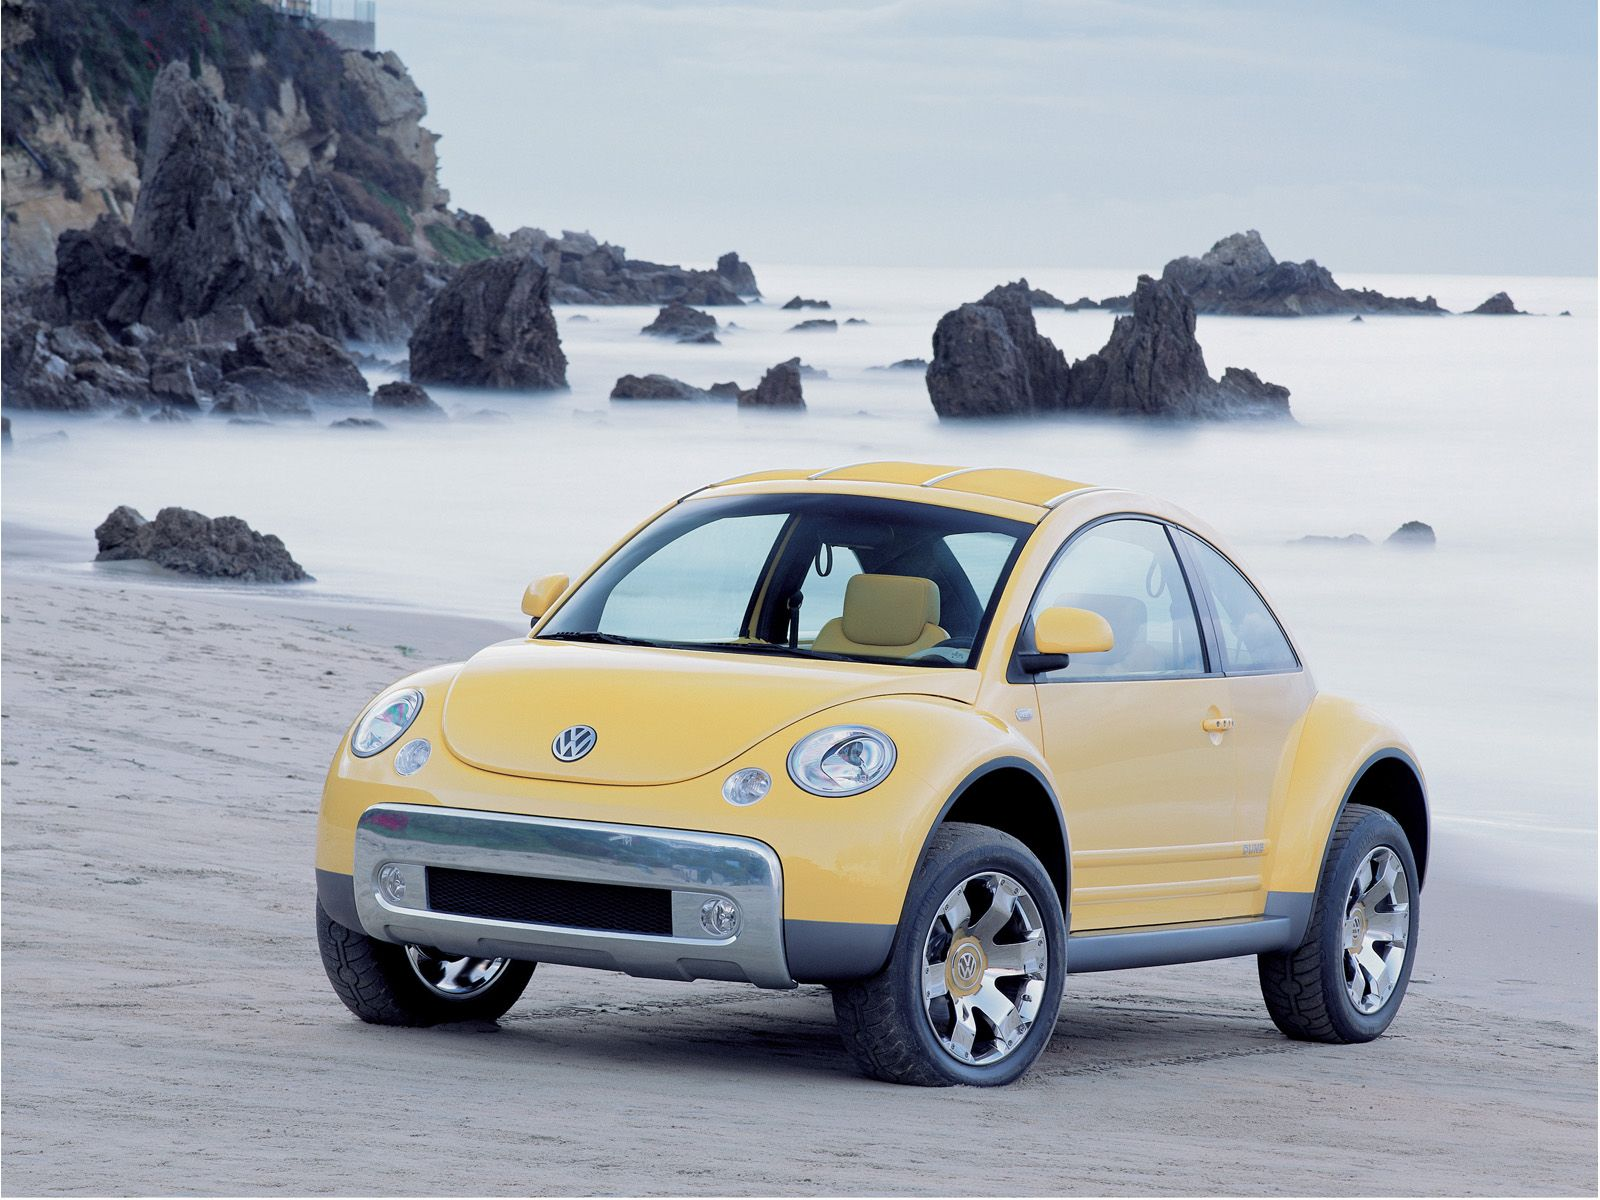 Volkswagen New Beetle Dune photos - PhotoGallery with 17 pics| CarsBase.com